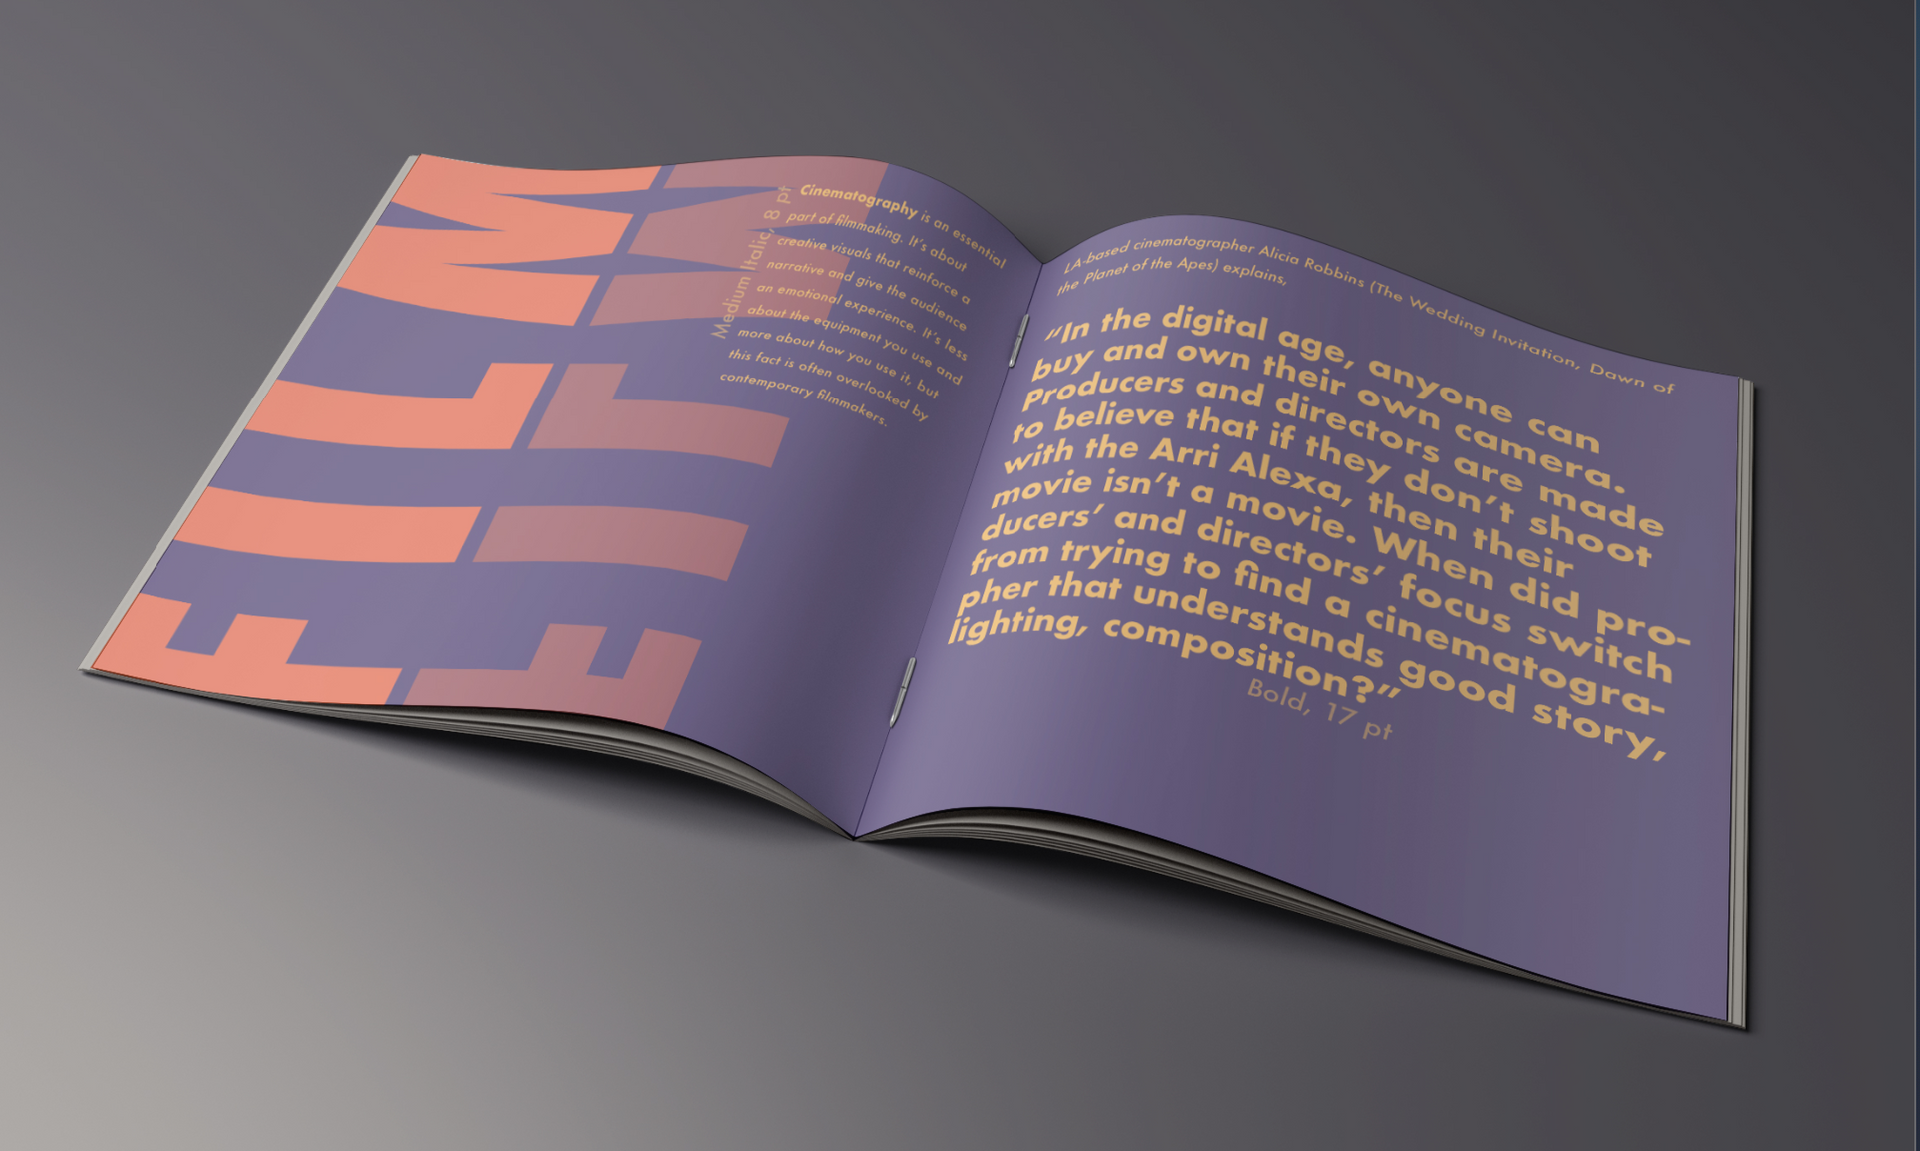 futura font booklet cinematography